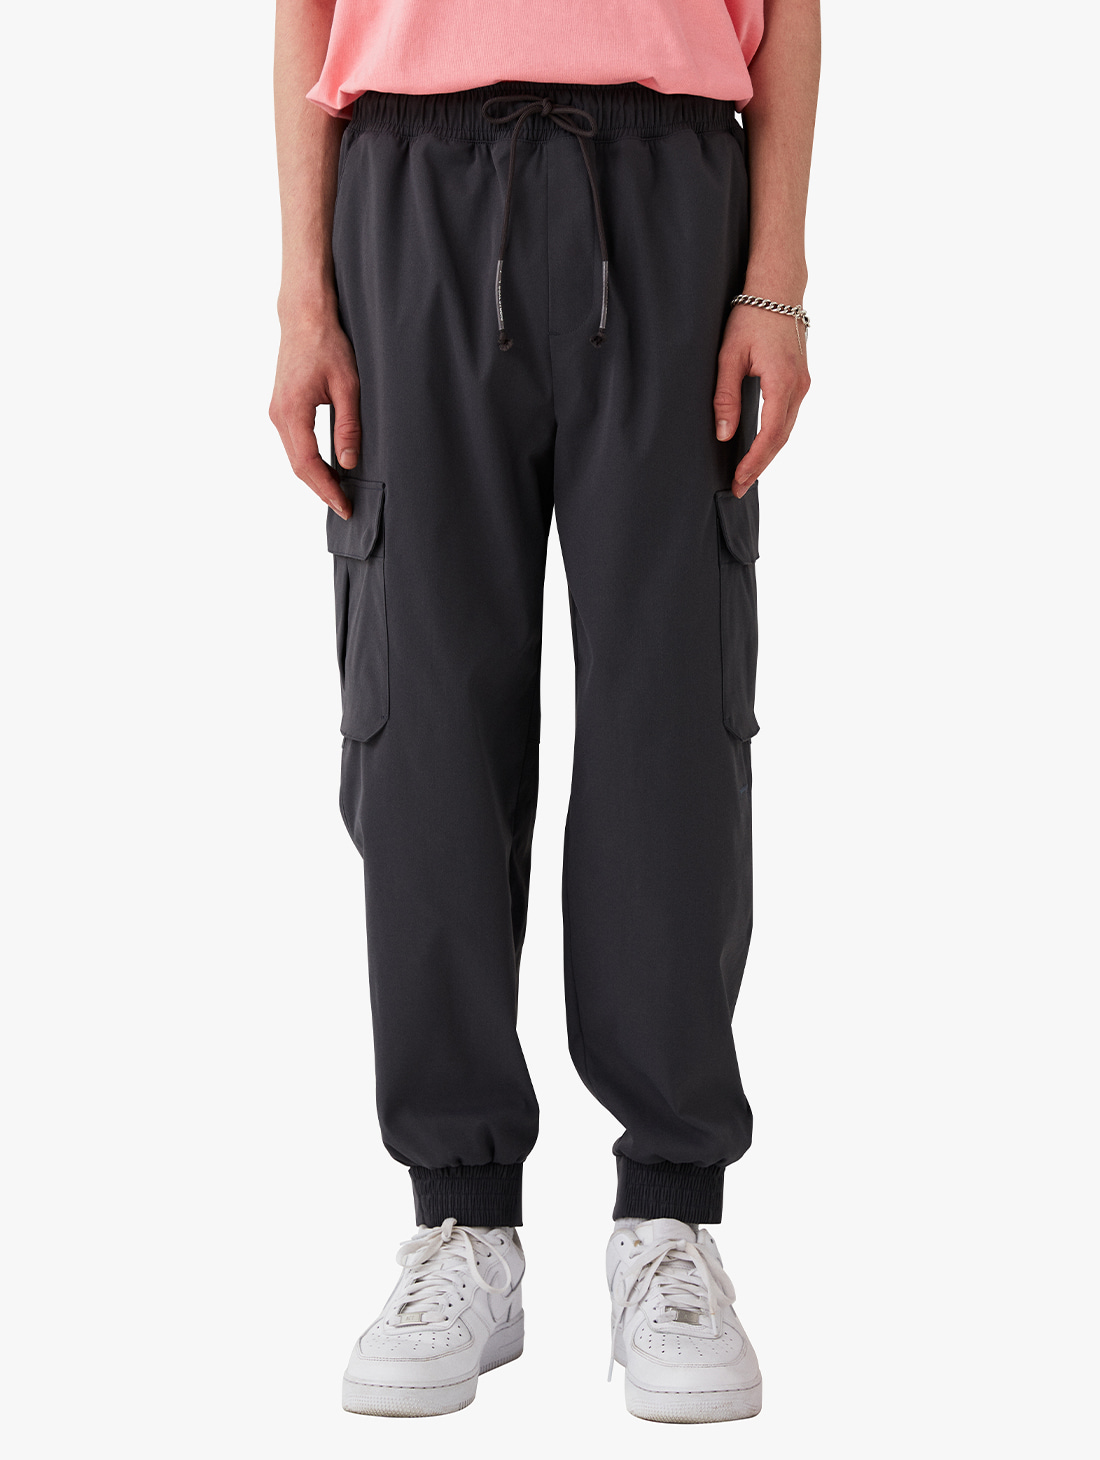 GOALSTUDIO CARGO WOVEN PANTS (2 Colors)